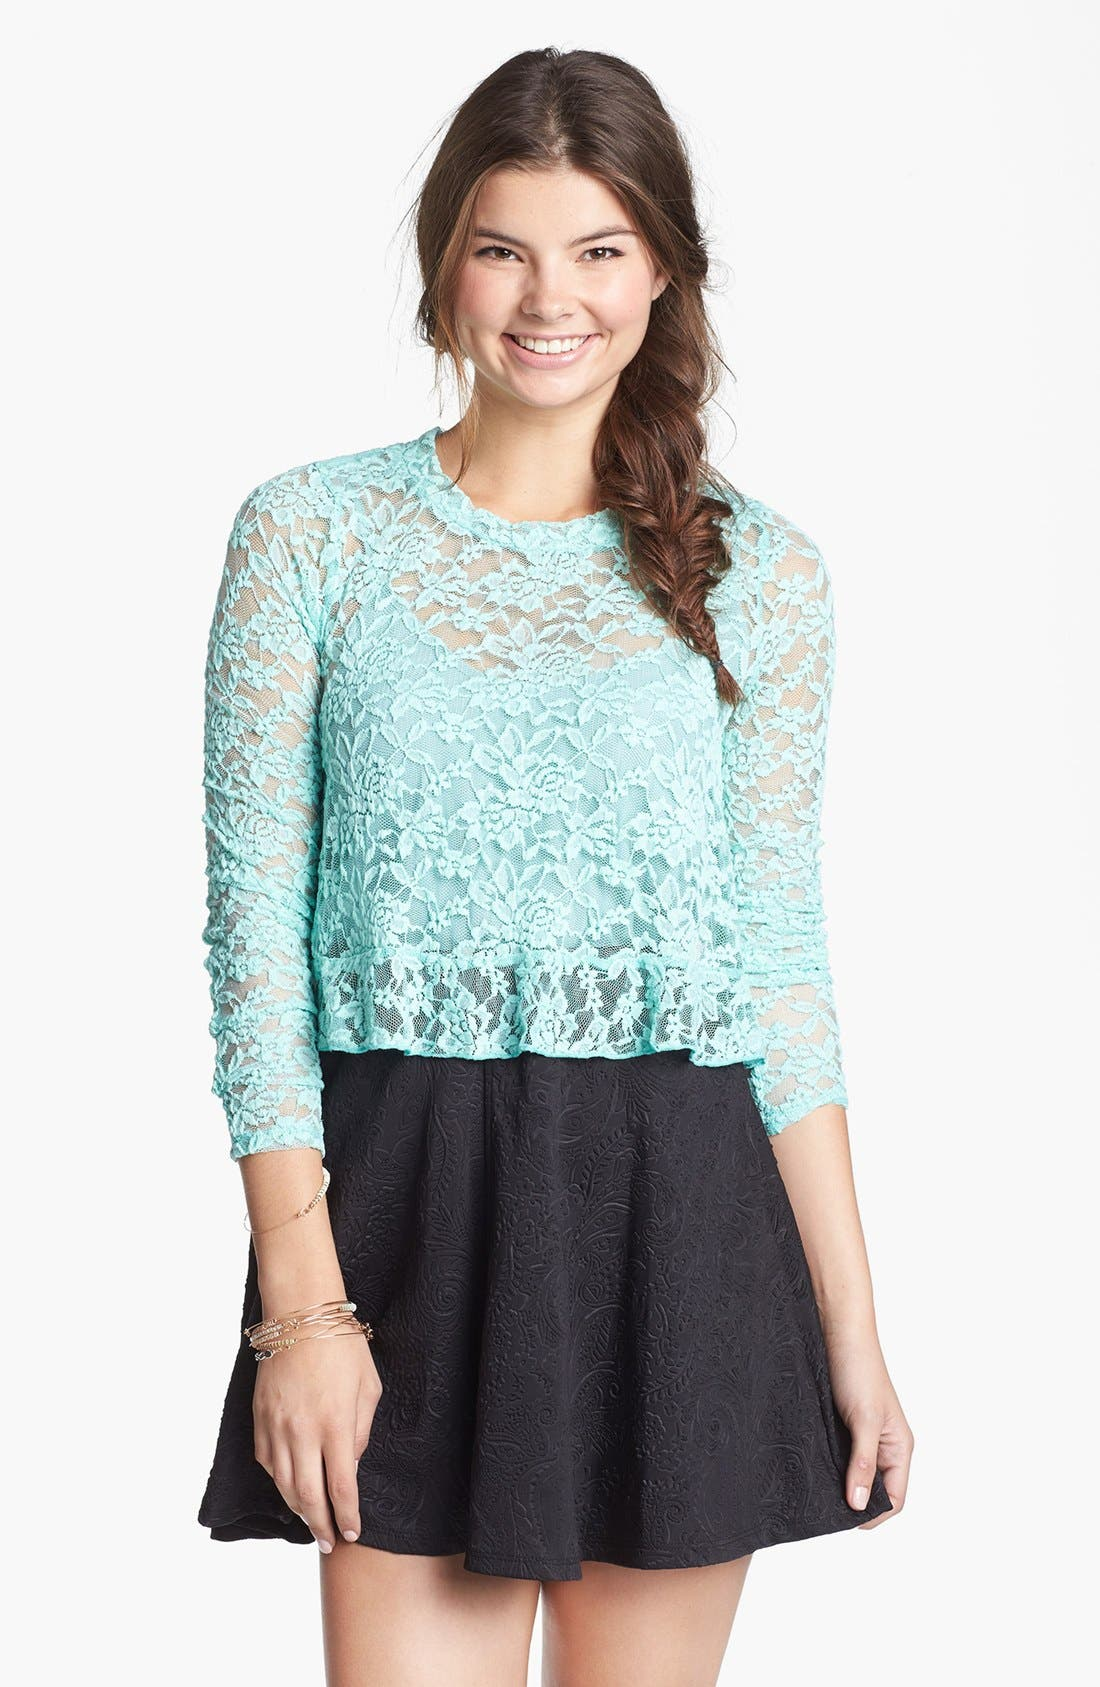 Alternate Image 1 Selected - Lily White Lace Peplum Crop Top (Juniors) (Online Only)